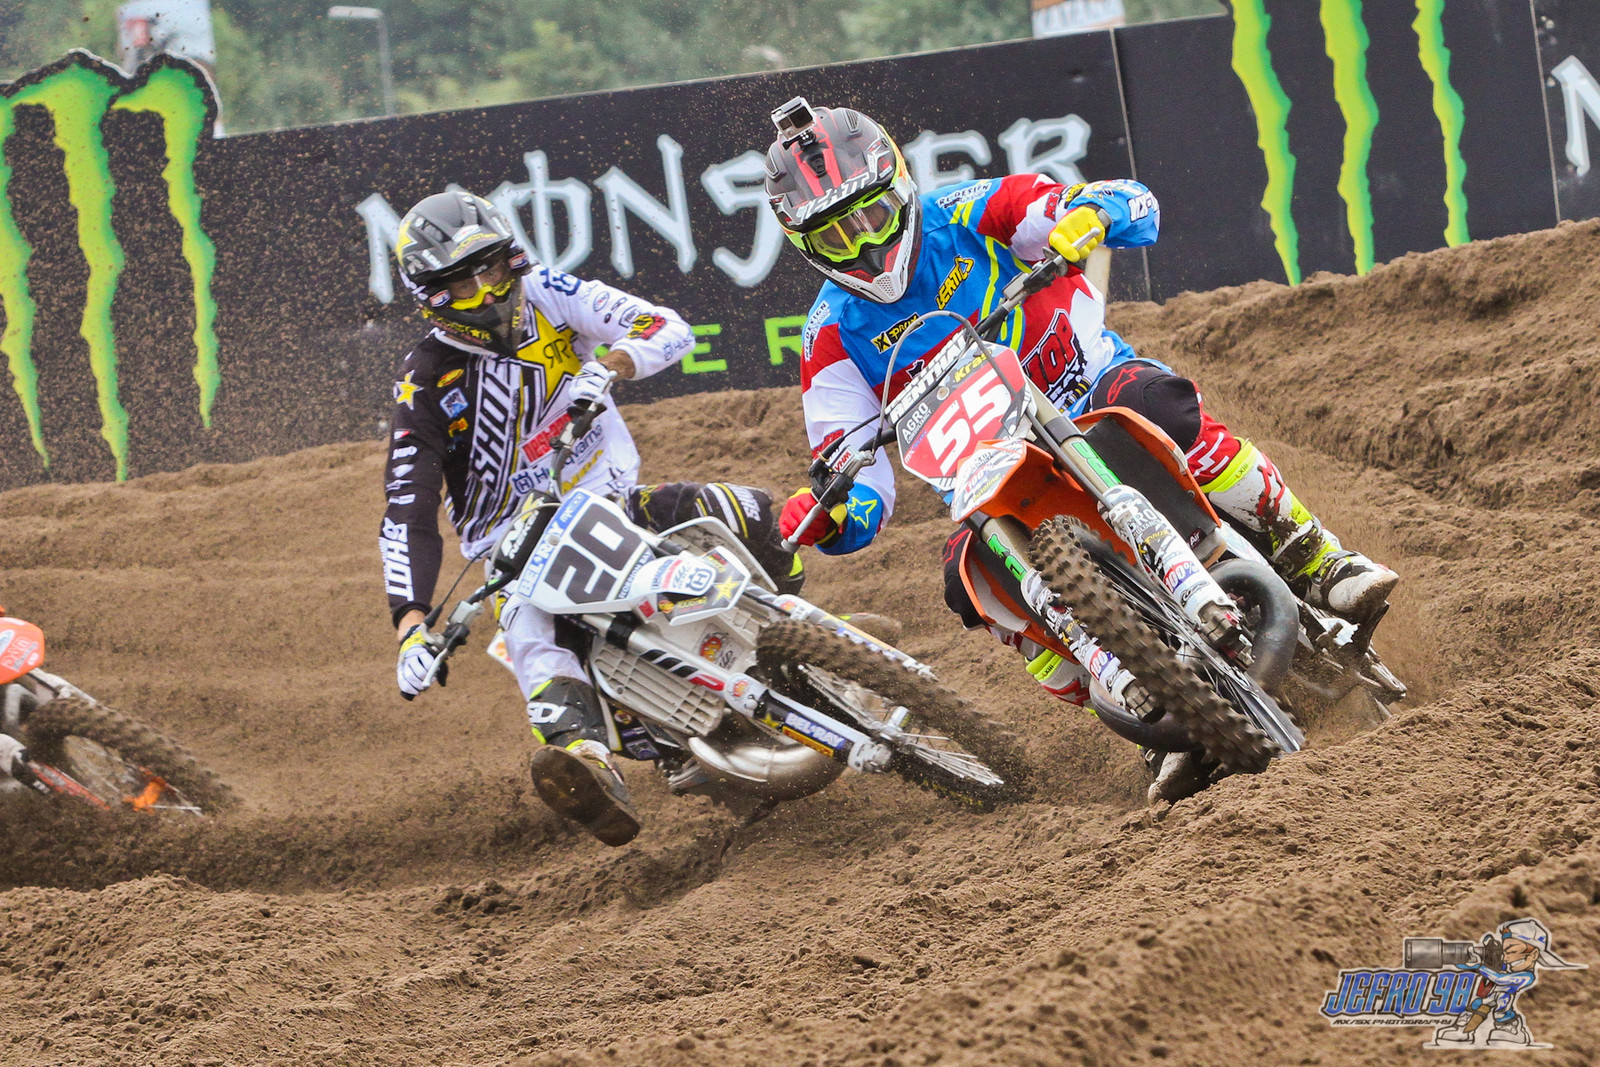 Mike Kras - Photo Gallery: MXGP of Limburg - Motocross Pictures - Vital MX